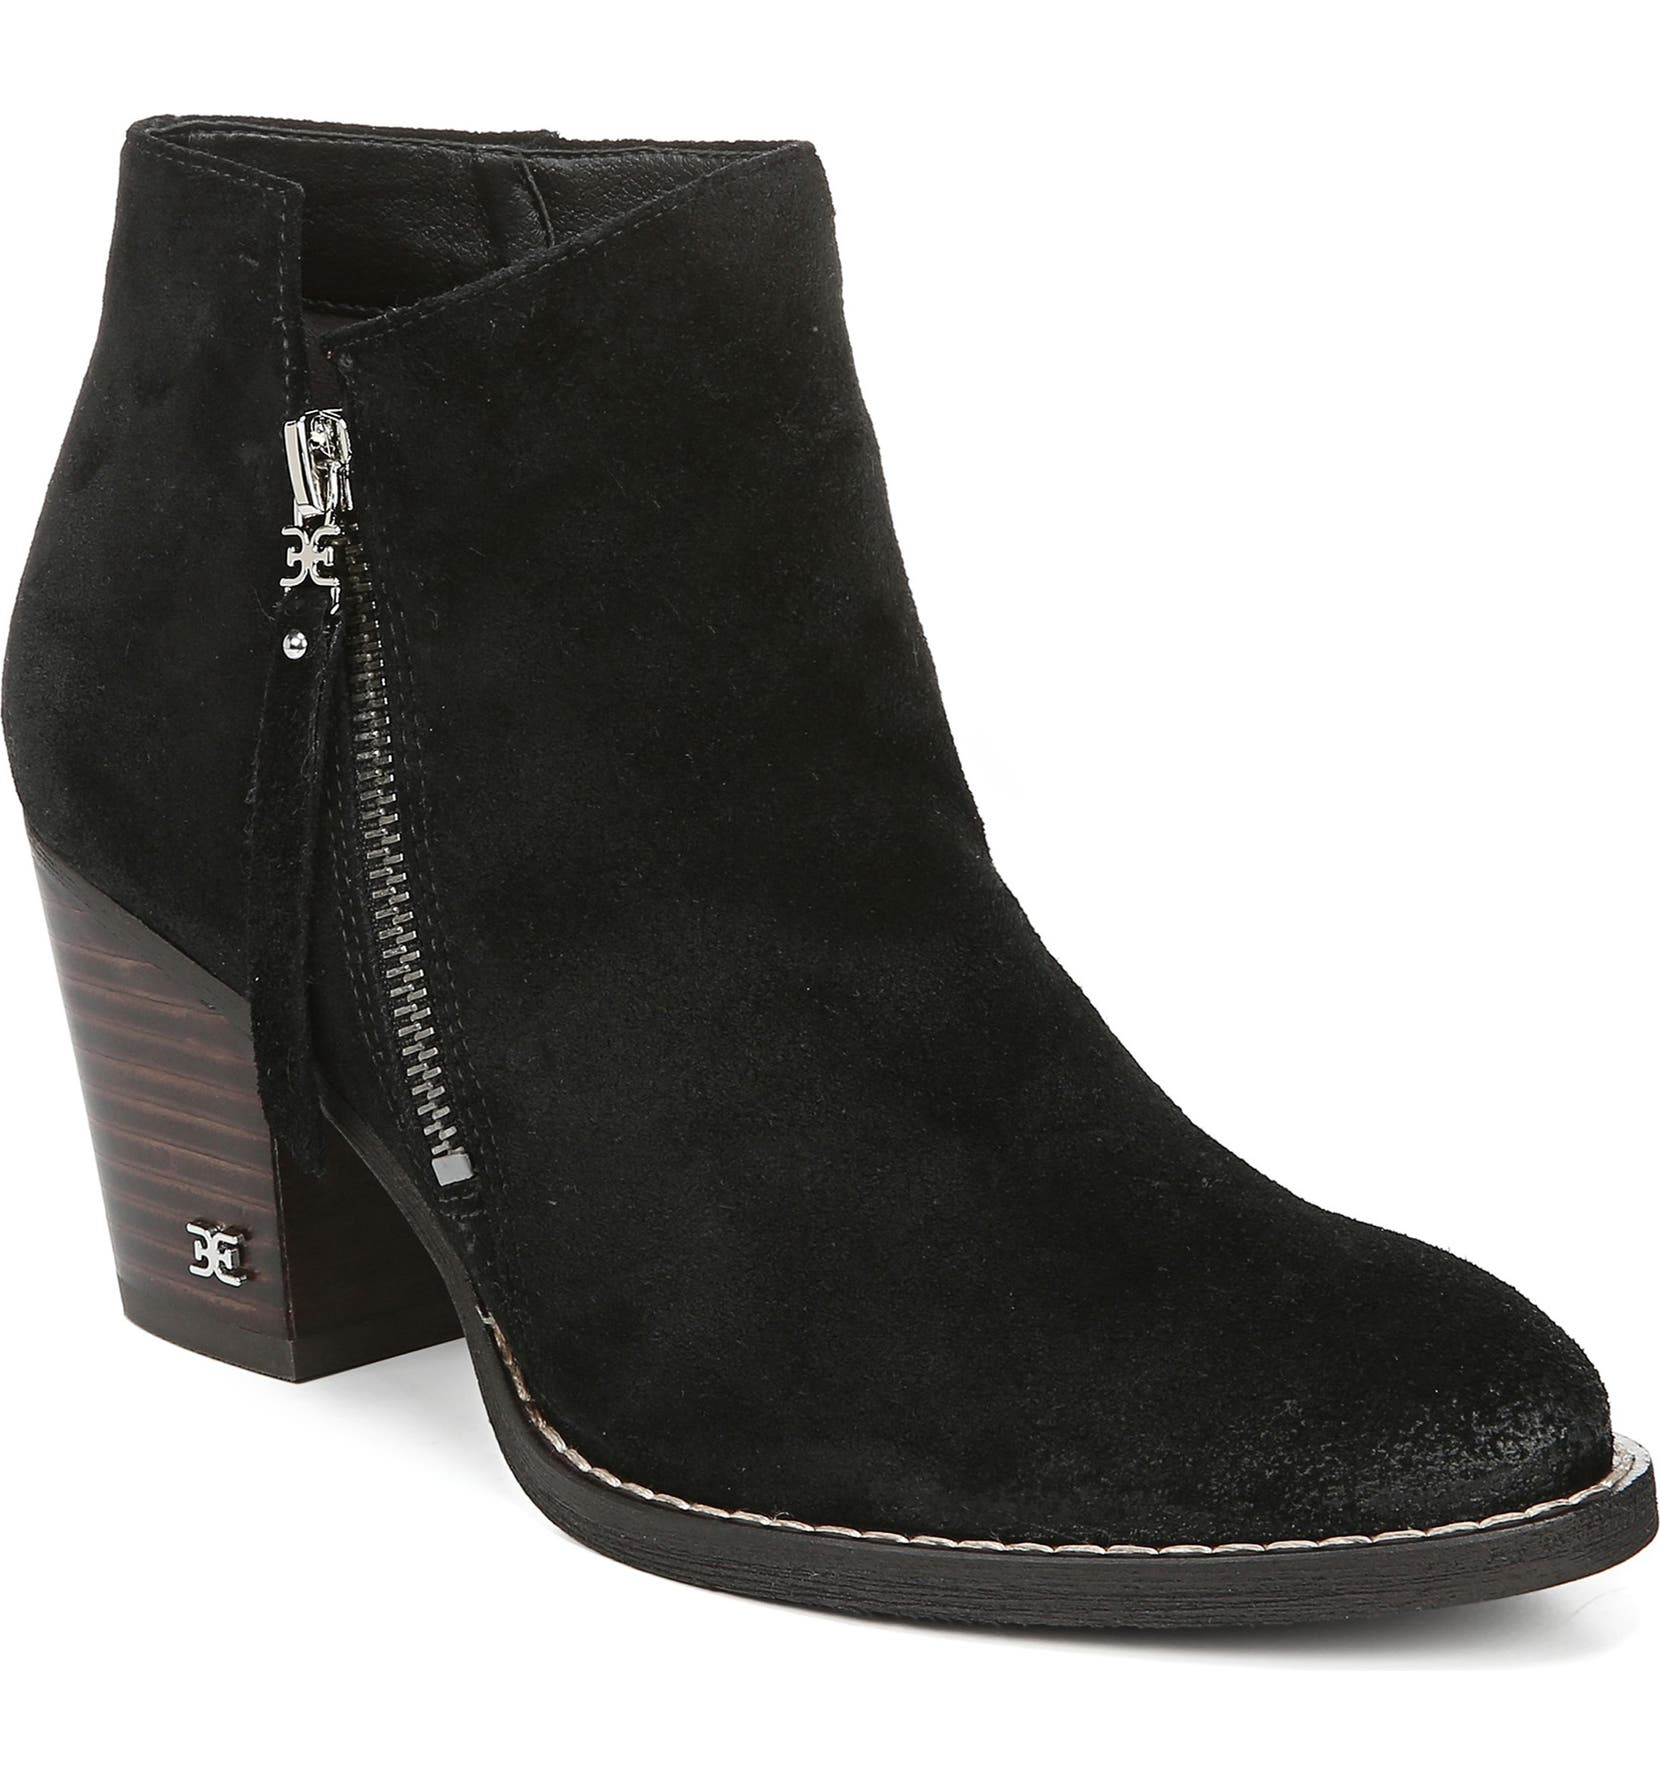 SAM EDELMAN Macon Bootie, Main, color, BLACK LEATHER